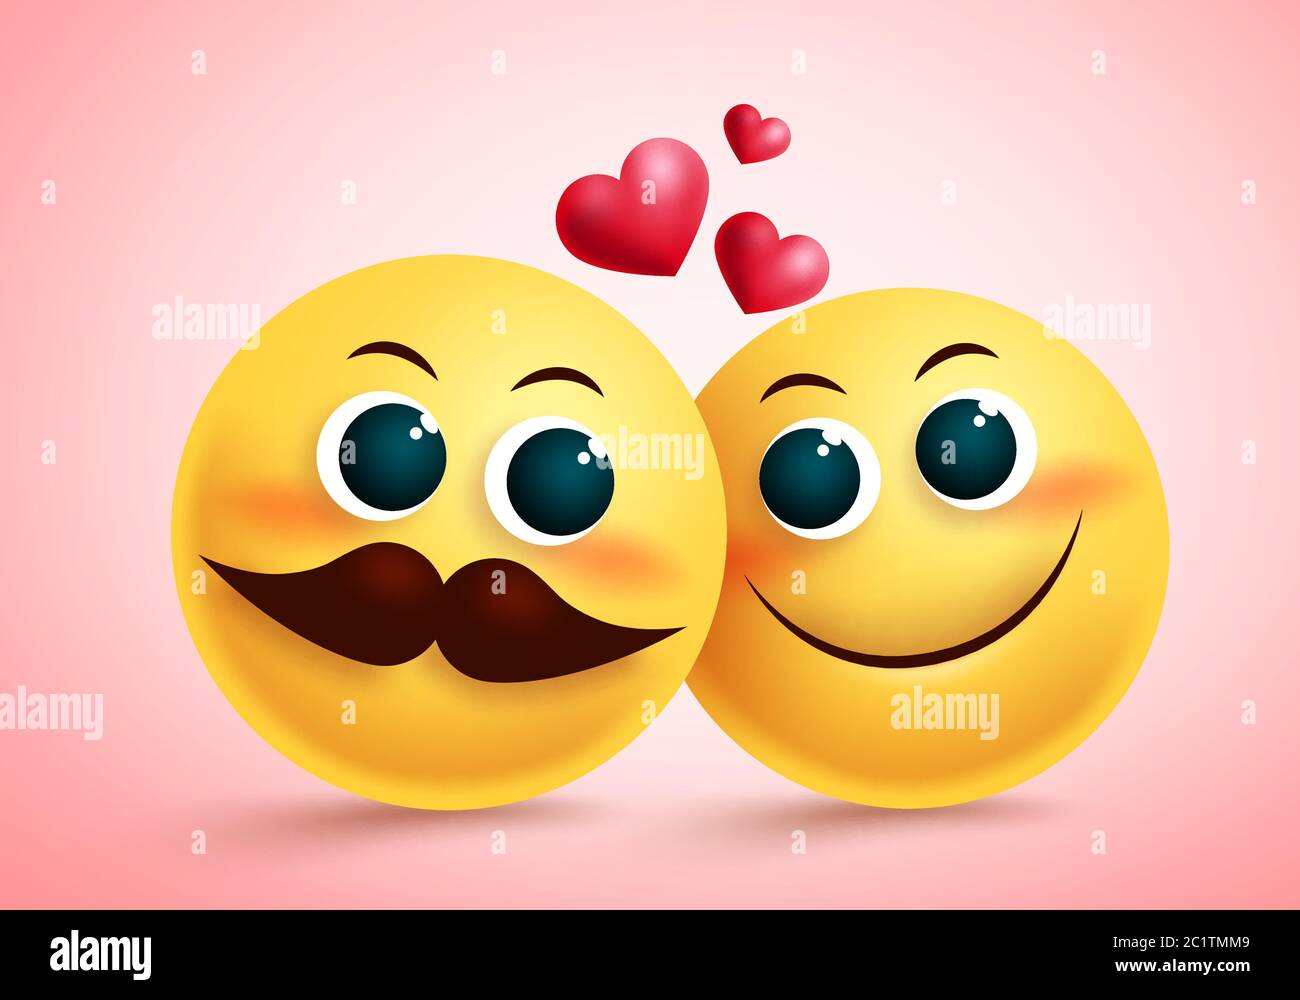 Smiley Emoji Couple In Love Vector Design Yellow Cute Emojis Lovers Character With Blush Face And Heart Element For Valentines And Relationship Stock Vector Image Art Alamy